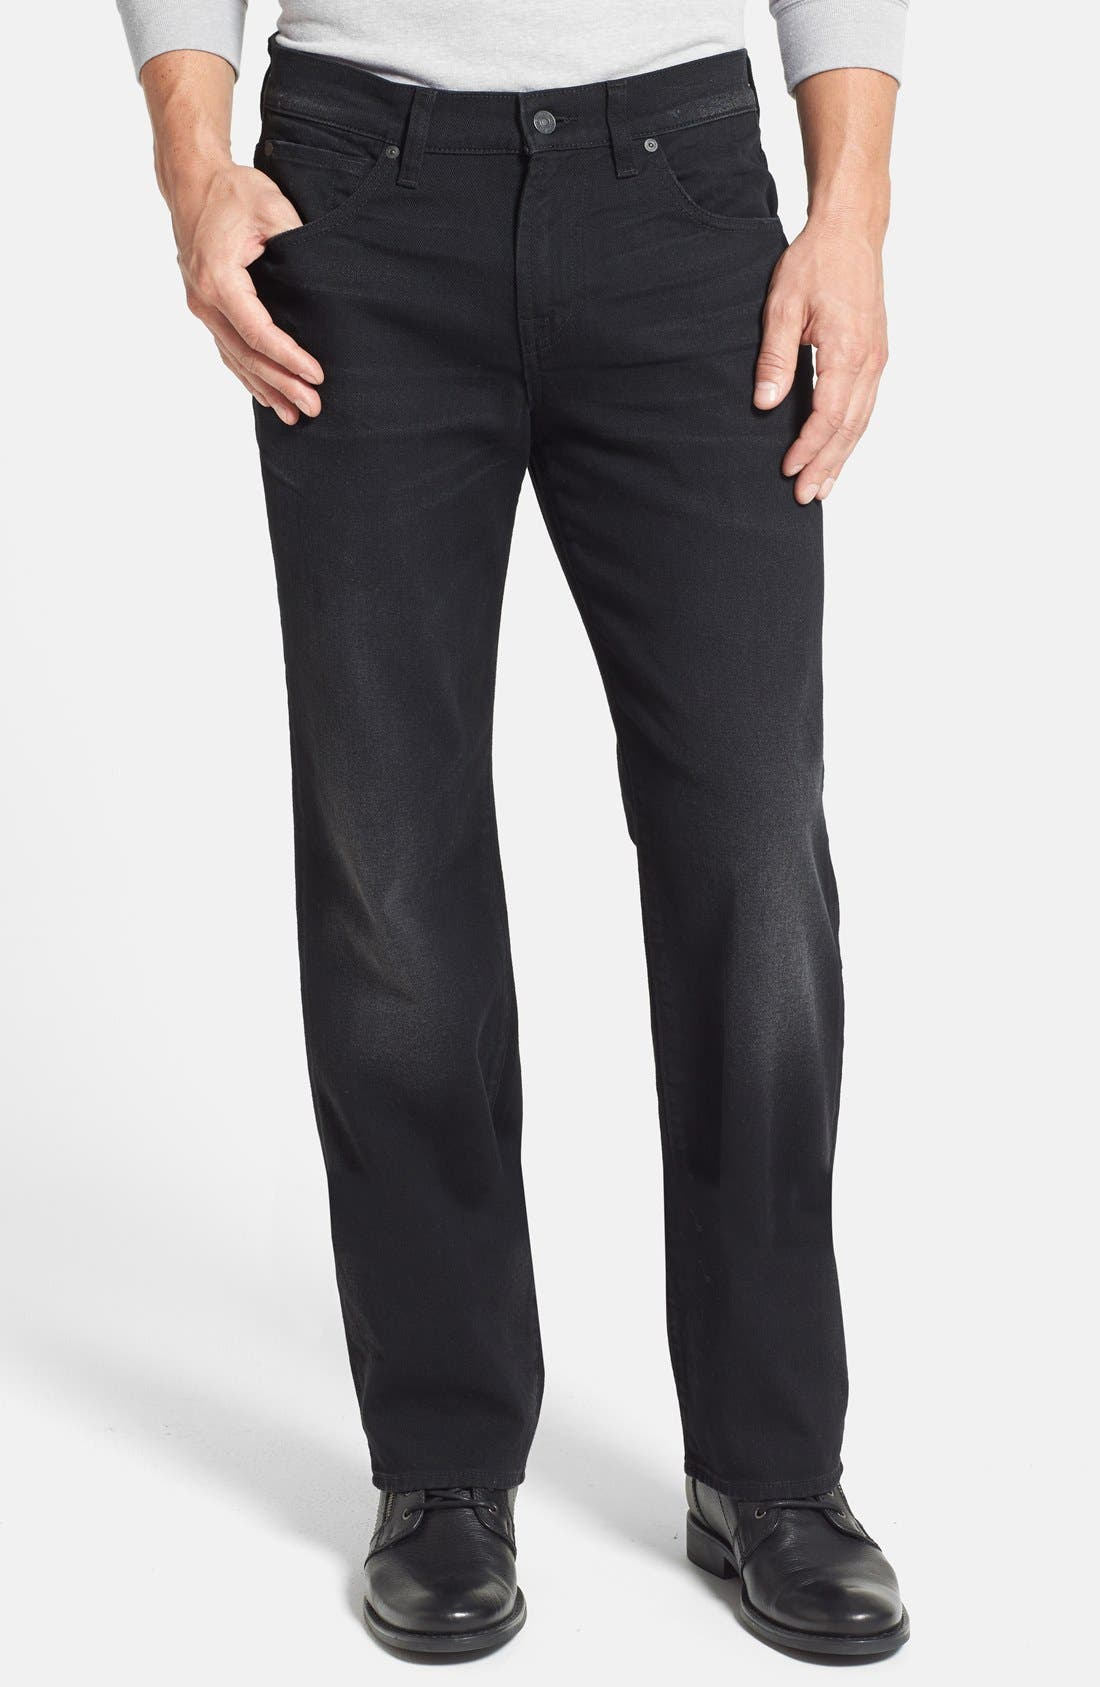 Main Image - 7 For All Mankind® 'Austyn' Relaxed Straight Leg Jeans (Dark West Edge) (Online Only)